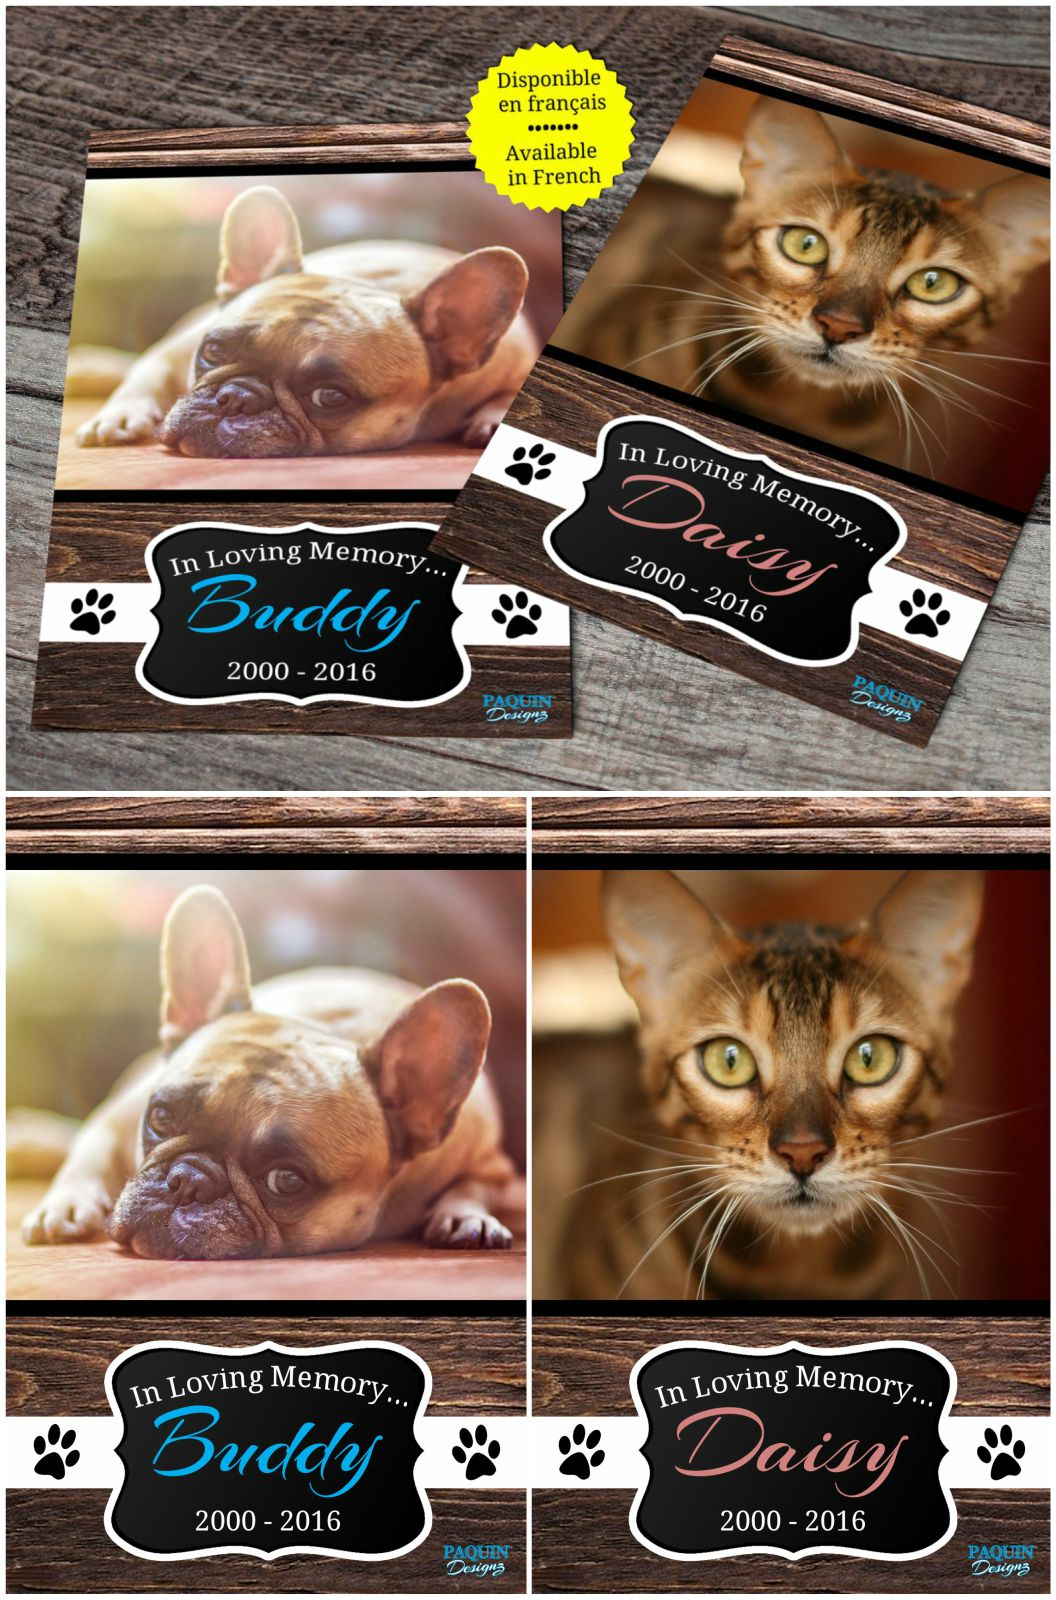 Pet memorial service and pet memorial cards.